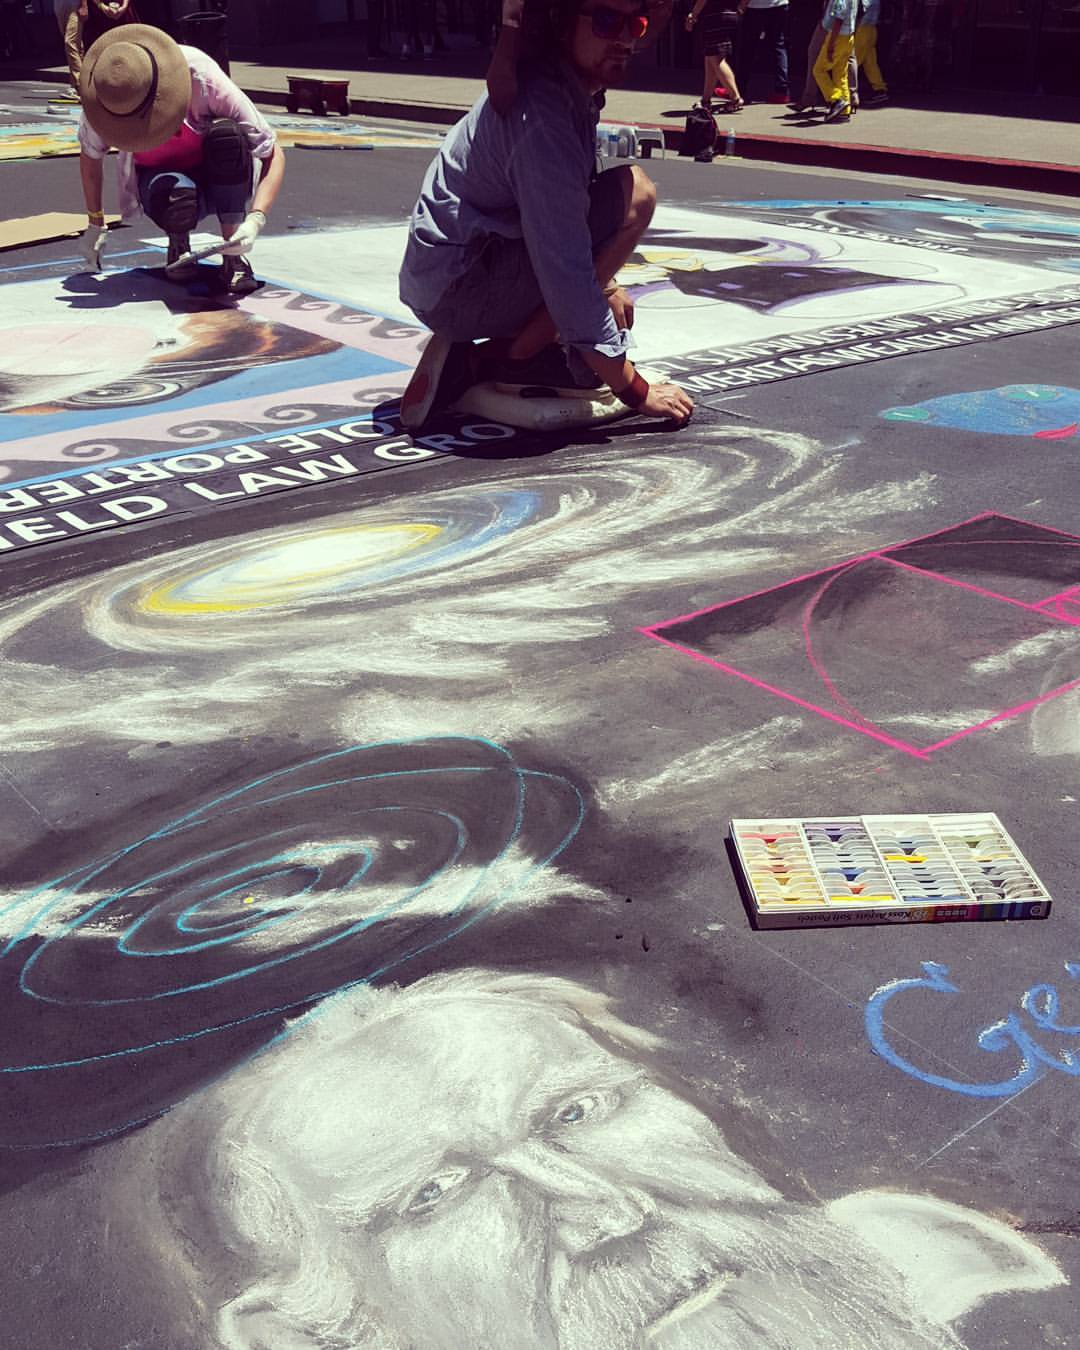 Artist in process of creating street painting